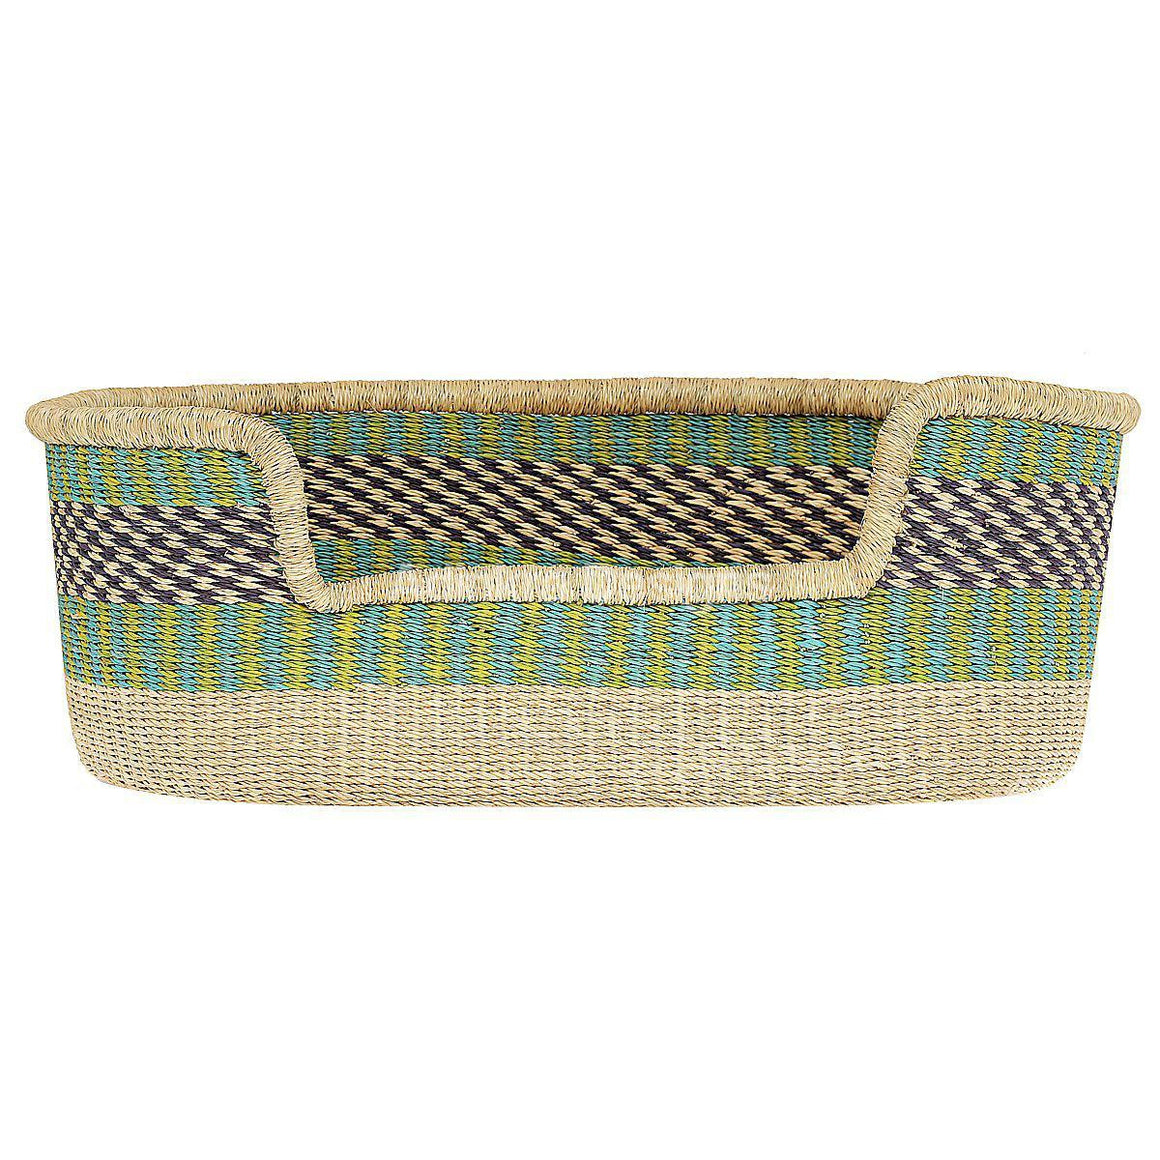 Dog Basket - Medium - 2